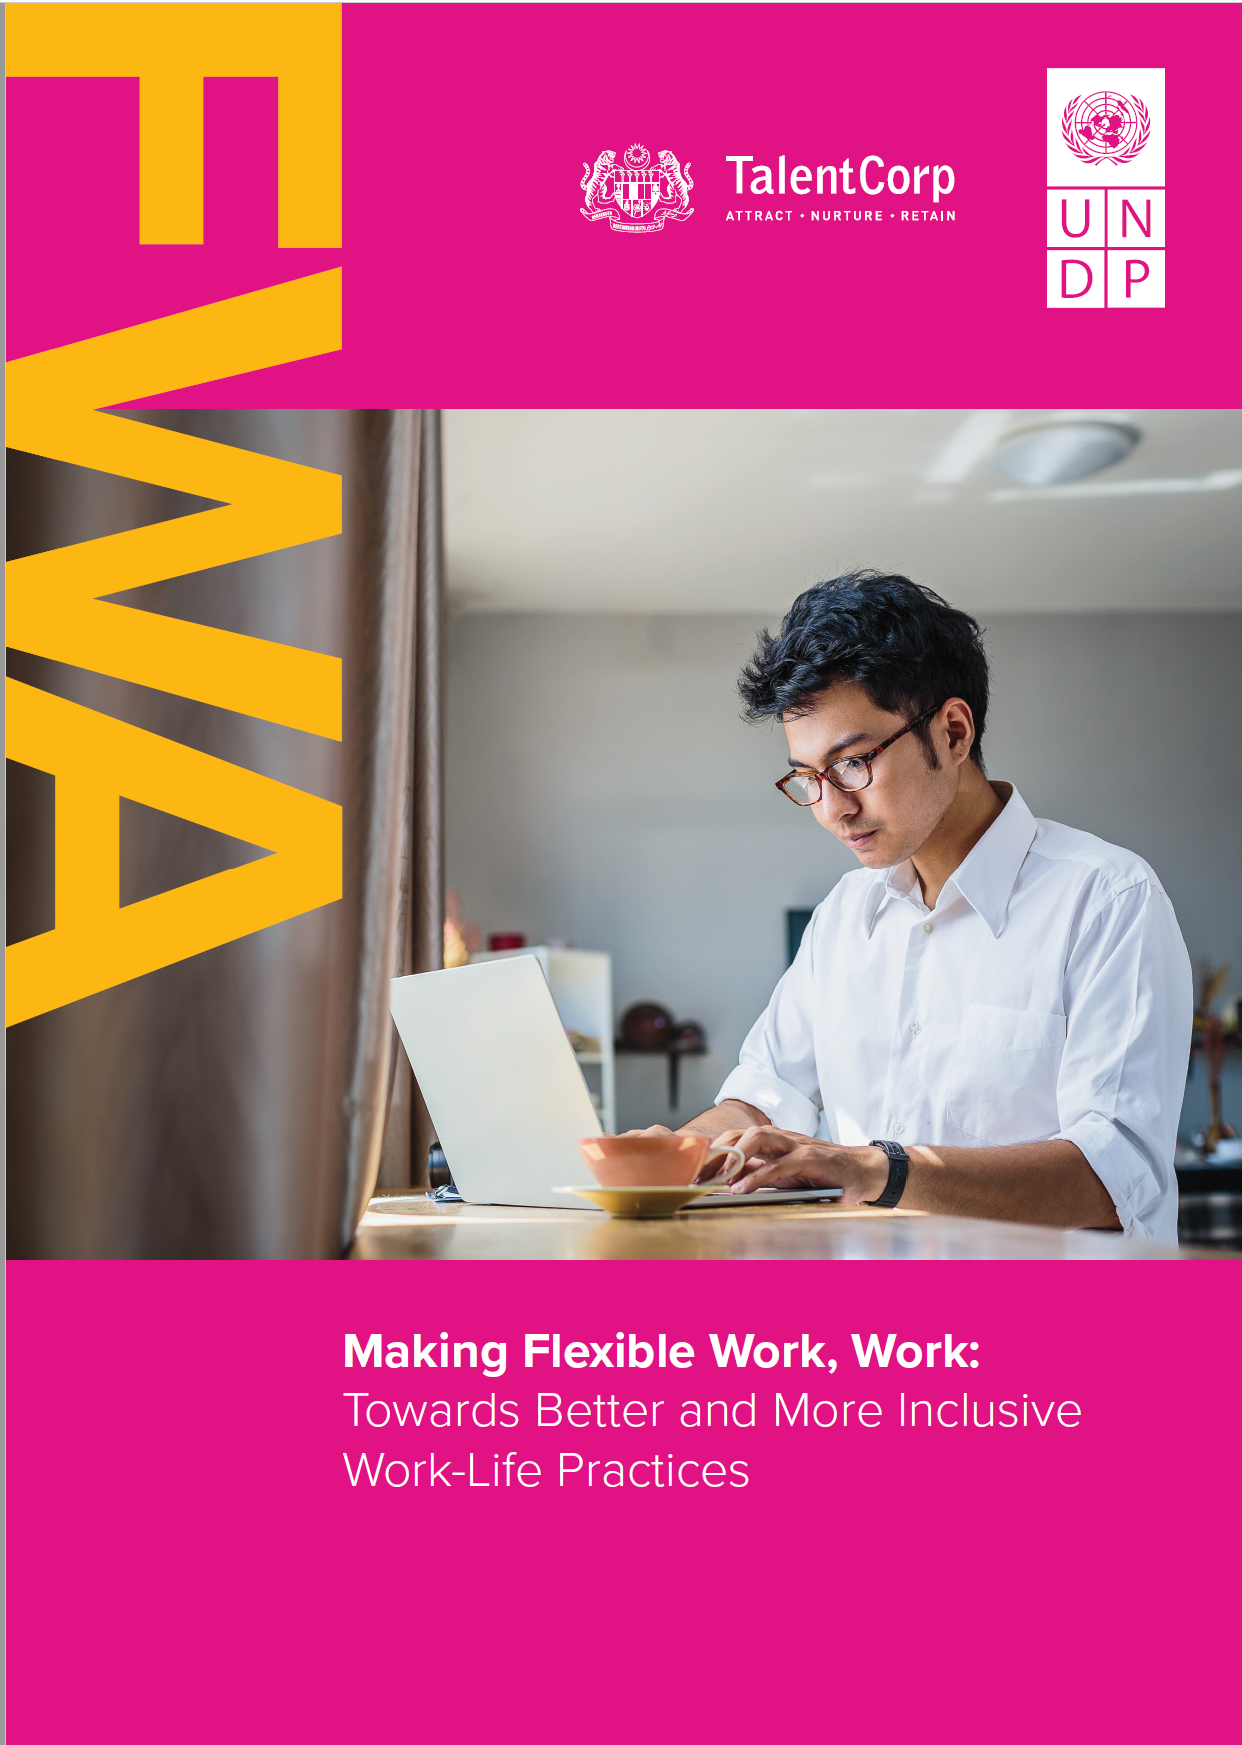 Making Flexible Work, Work: Towards Better and More Inclusive Work-Life Practices